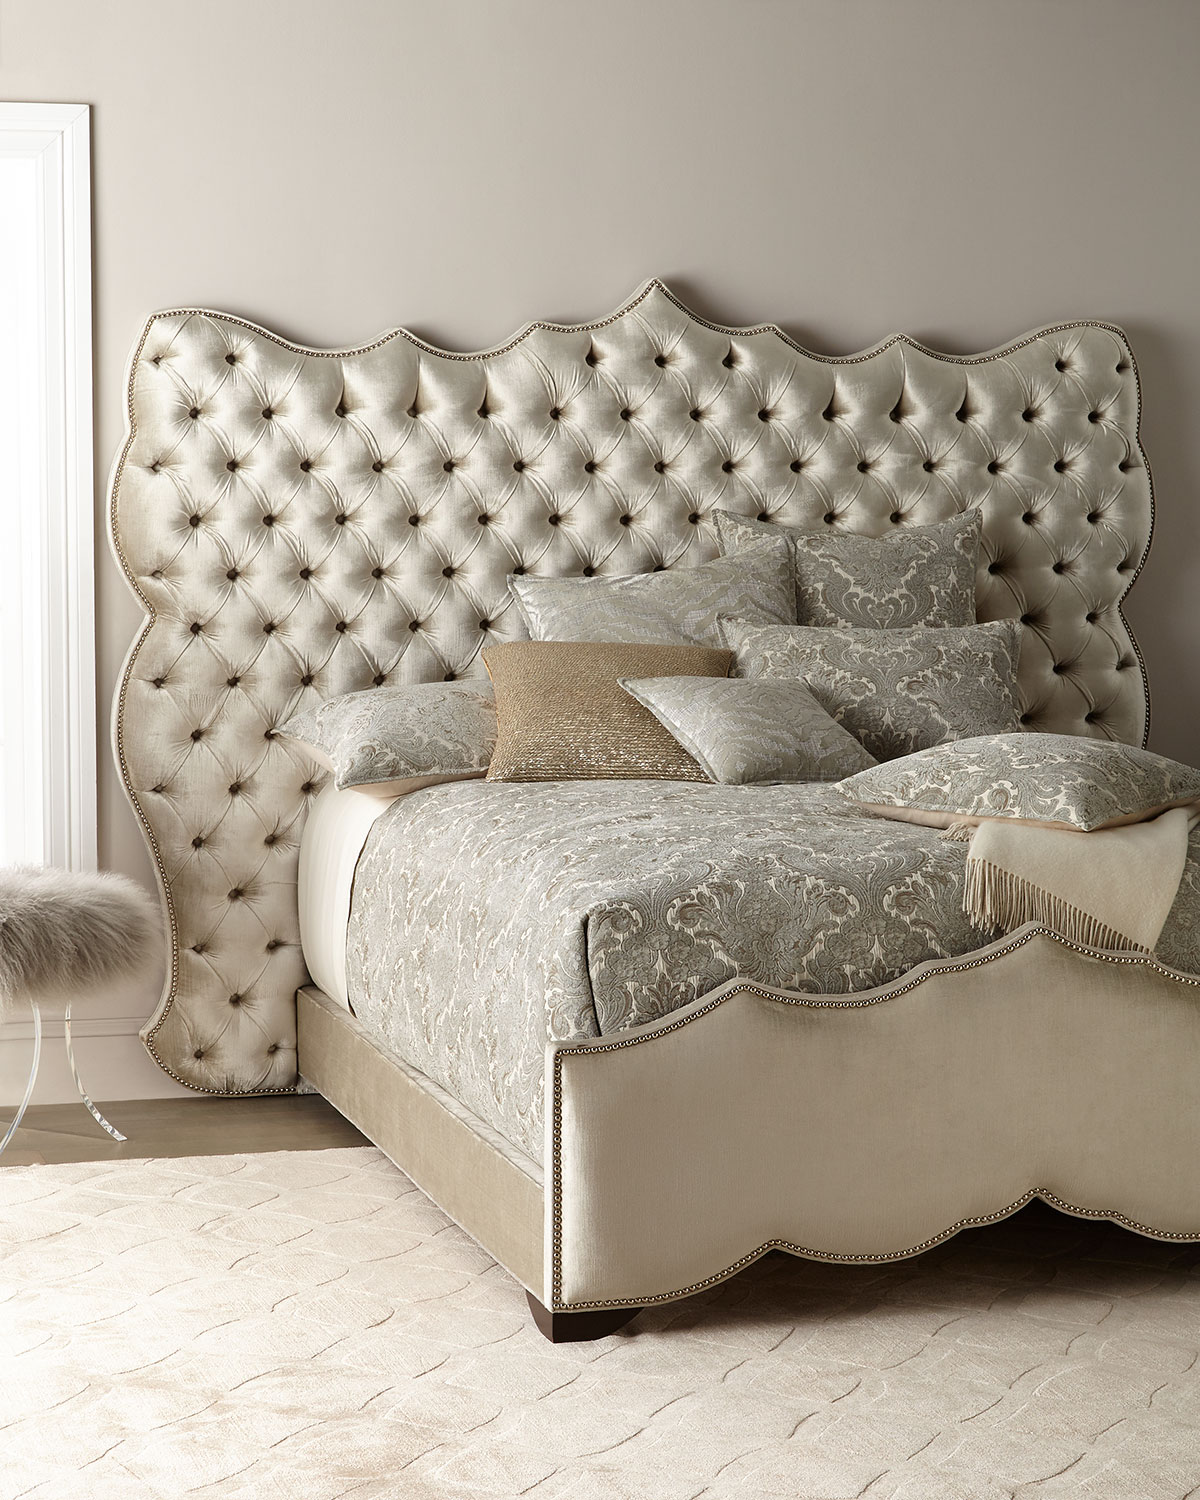 Haute House Samara Tufted California King Bed